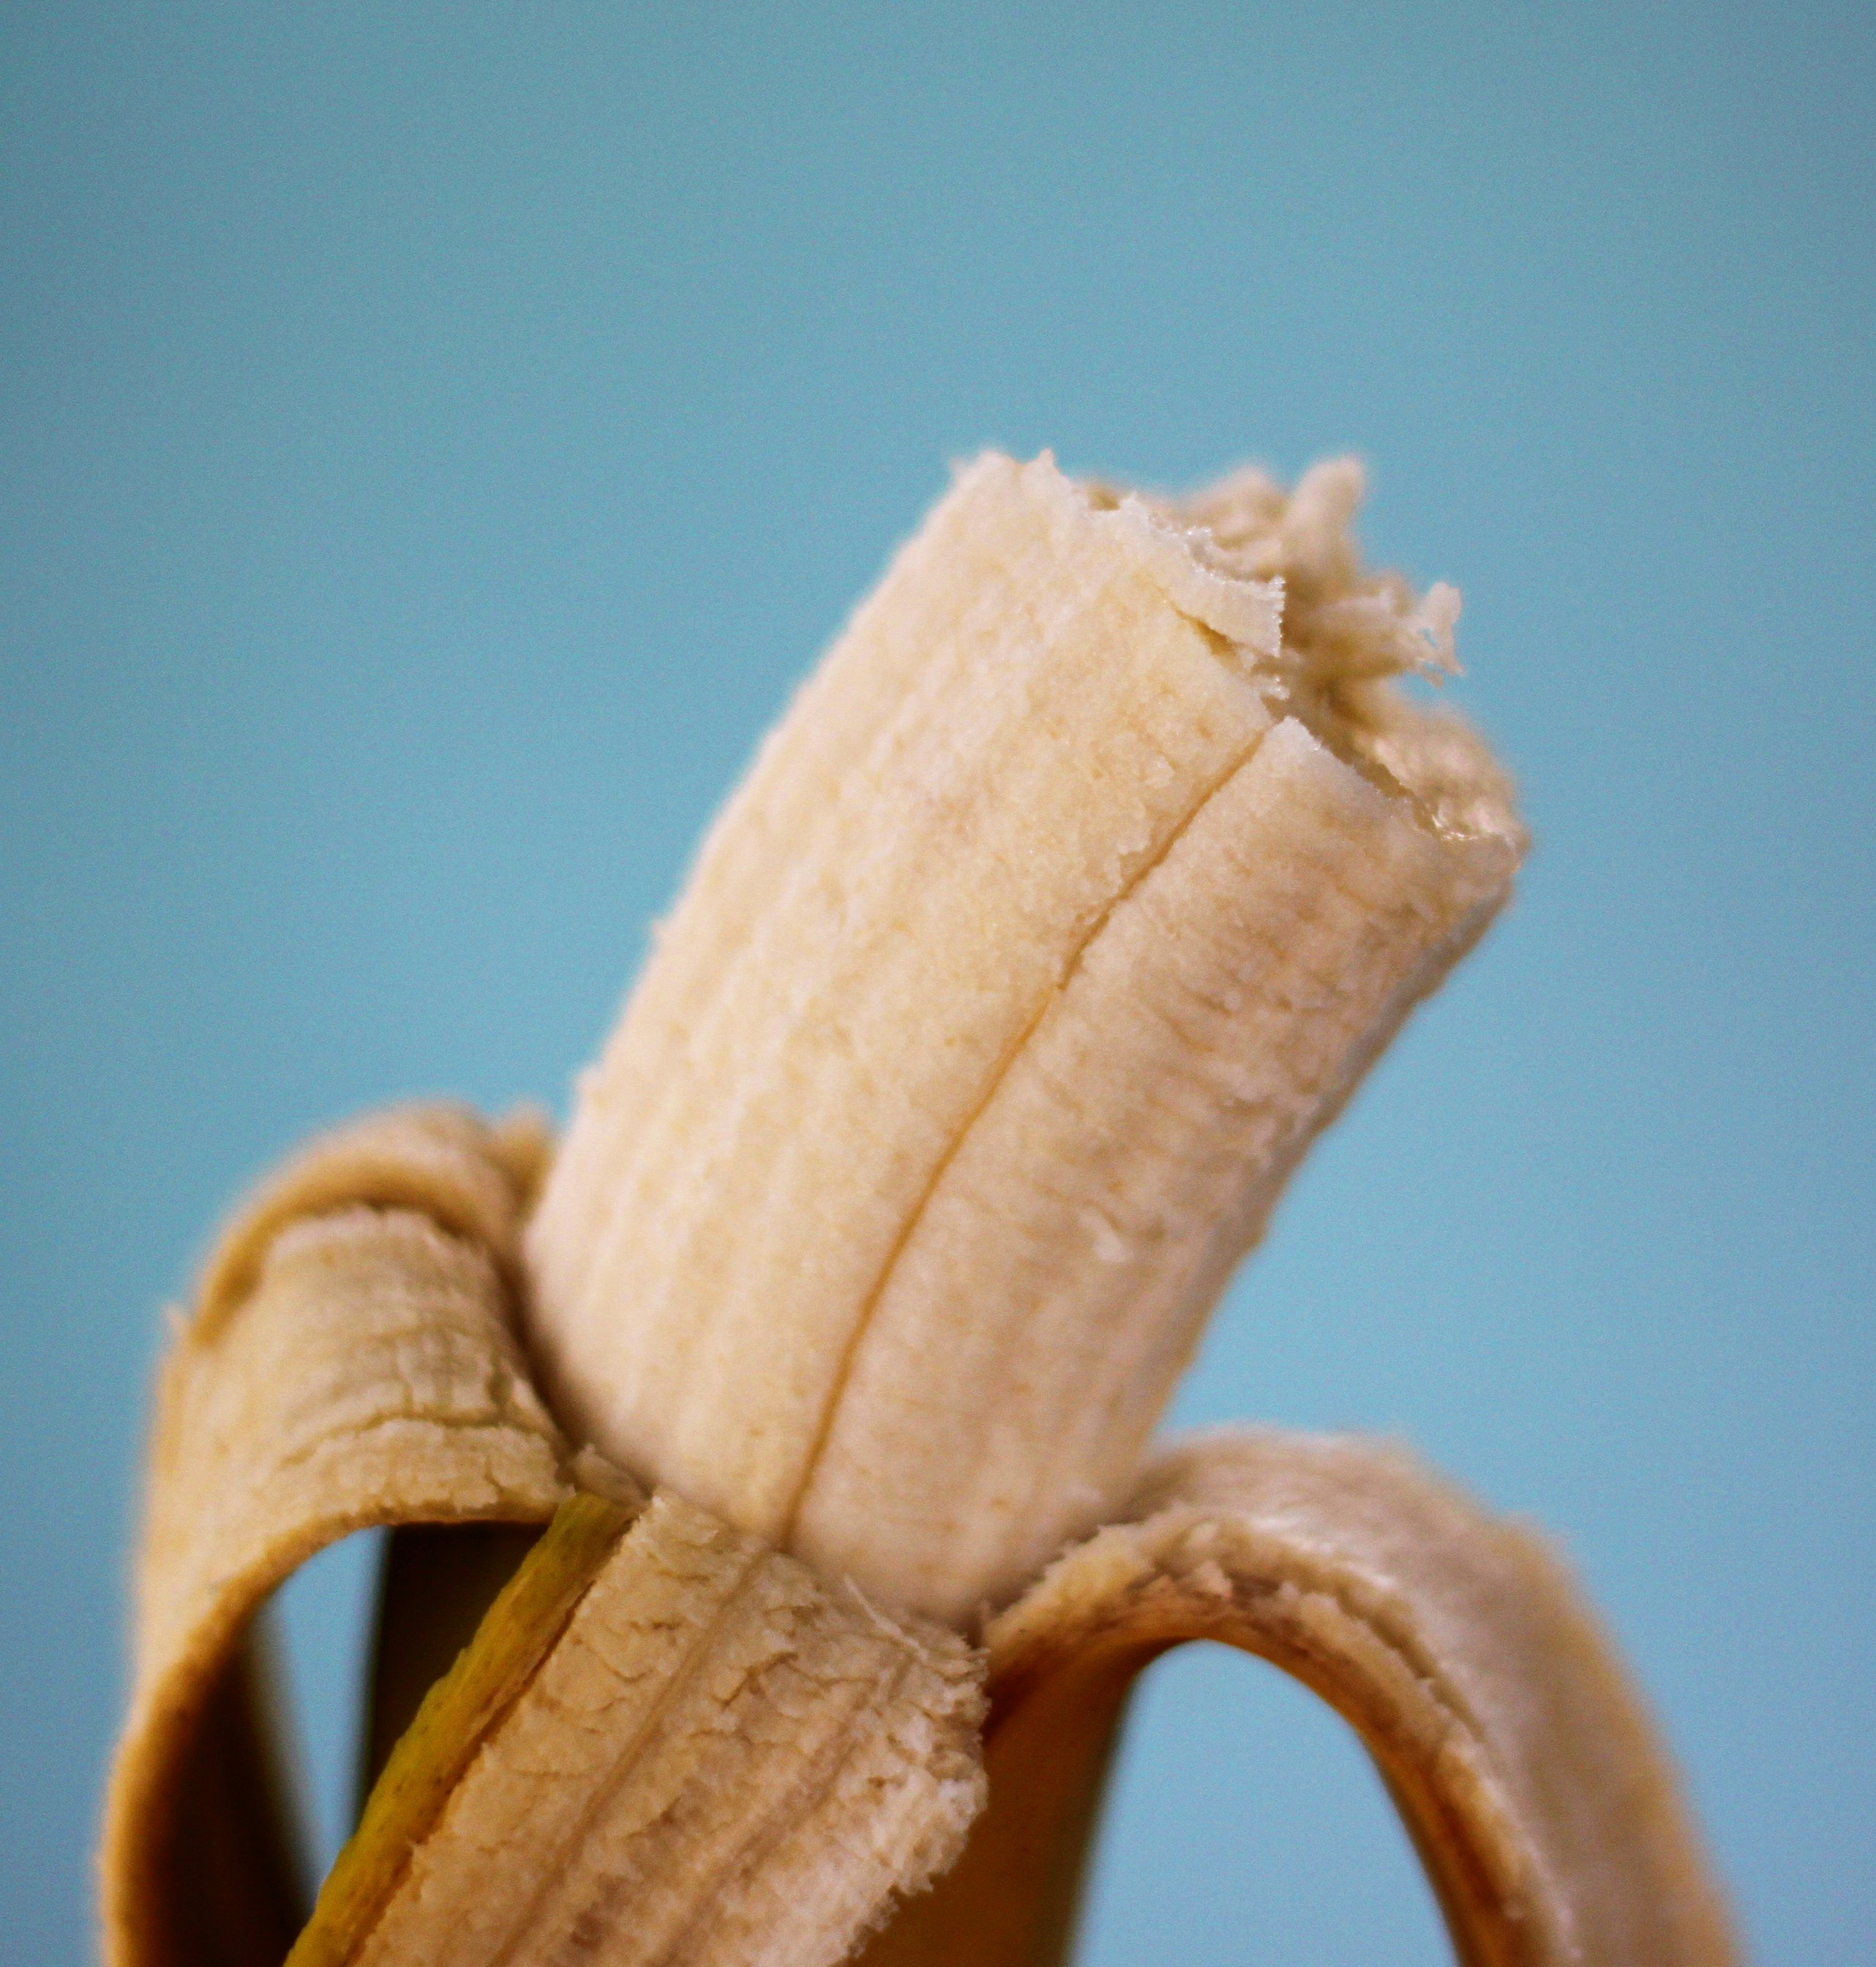 banana with bite missing